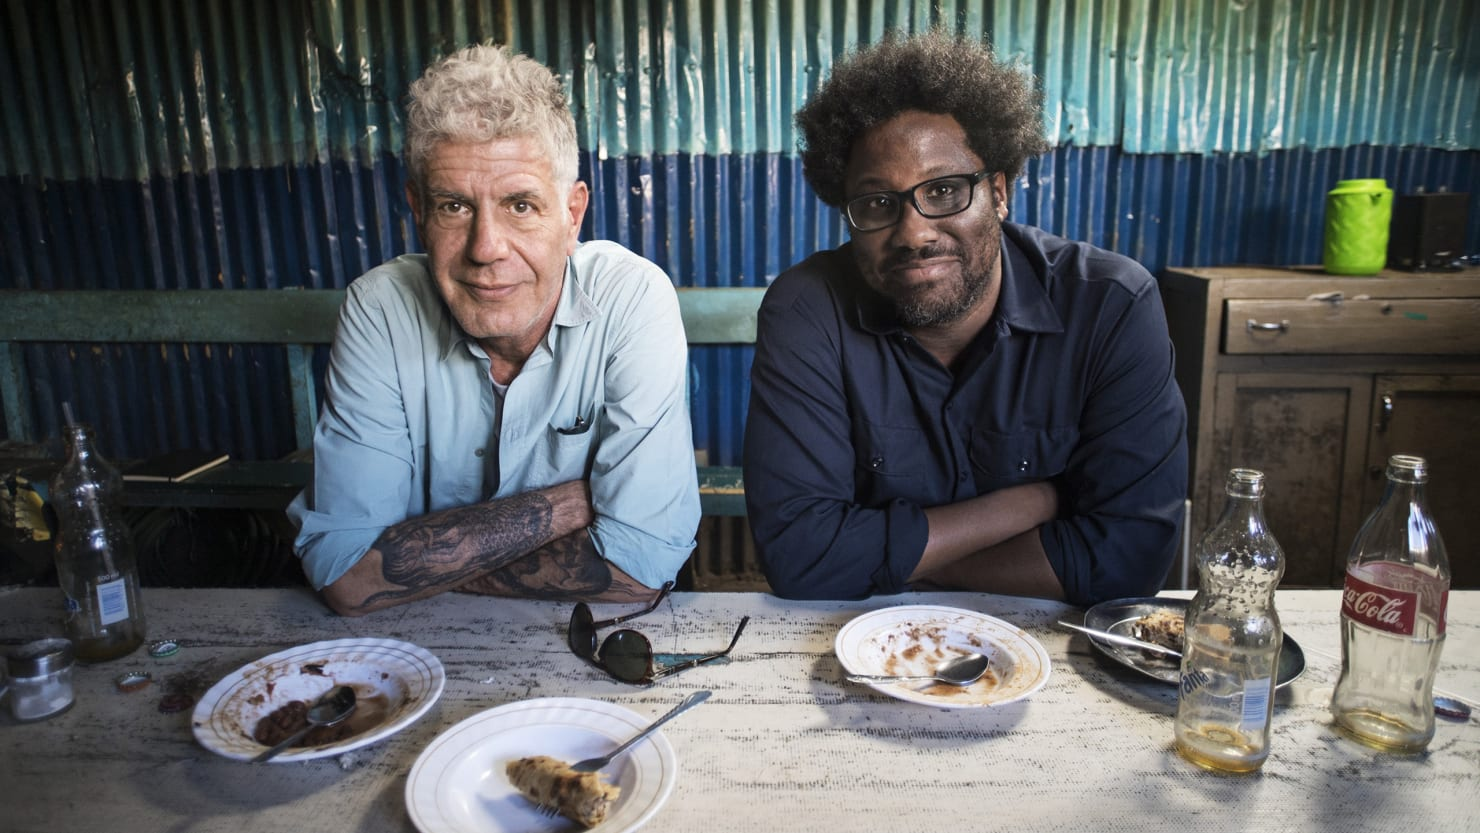 W. Kamau Bell on Anthony Bourdain's 'I Pinch Myself' Moment From First Posthumous Episode